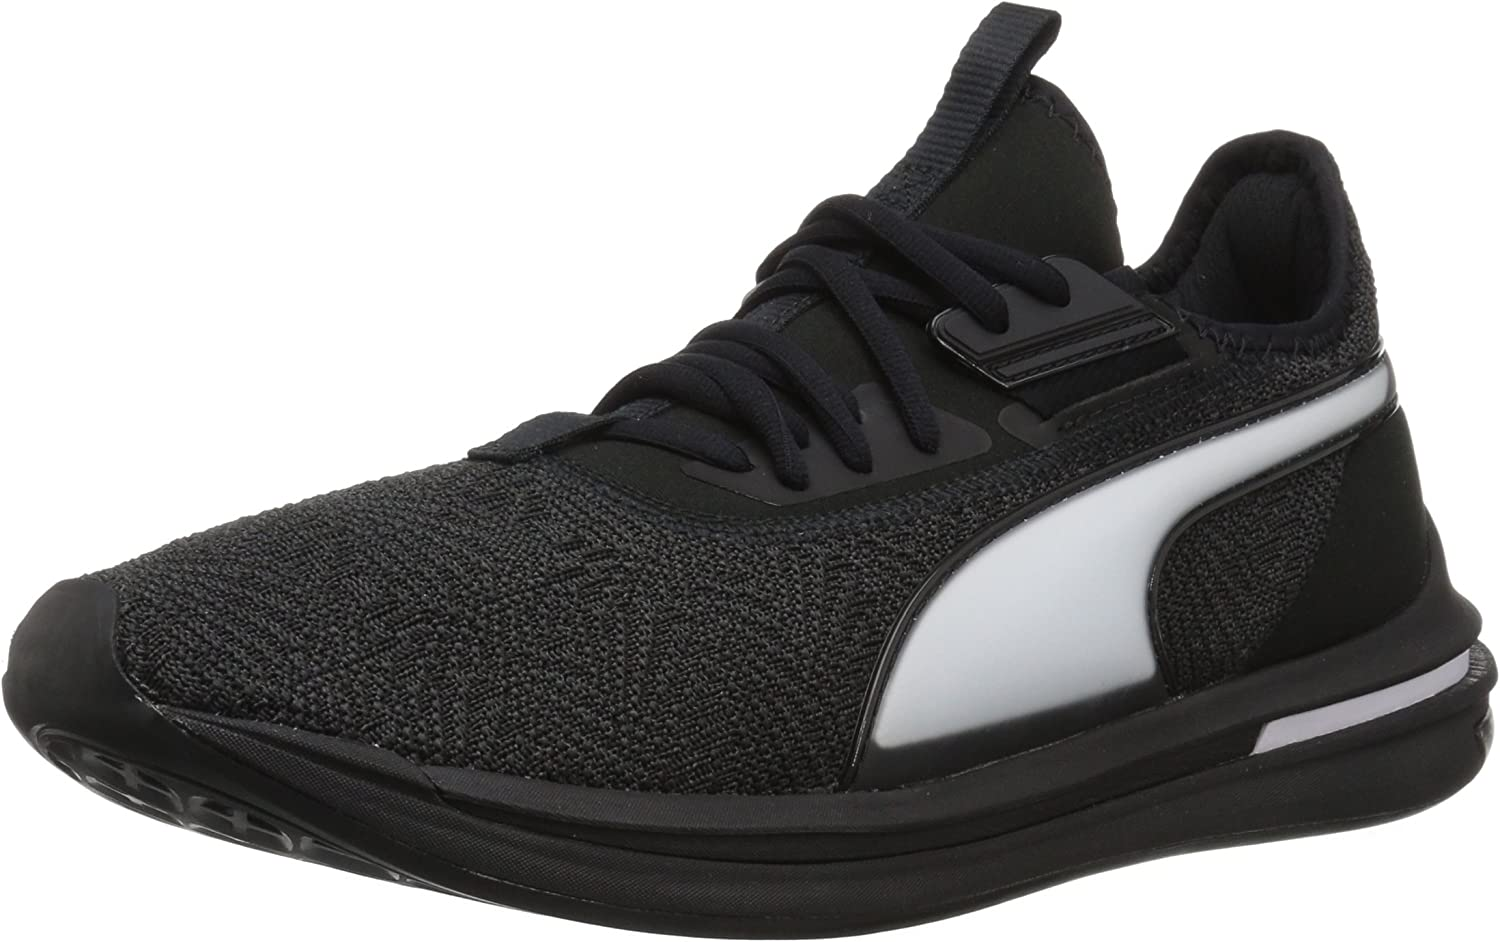 PUMA - Mens Ignite Limitless Sr-71 shoes, 10.5 UK, Puma Black